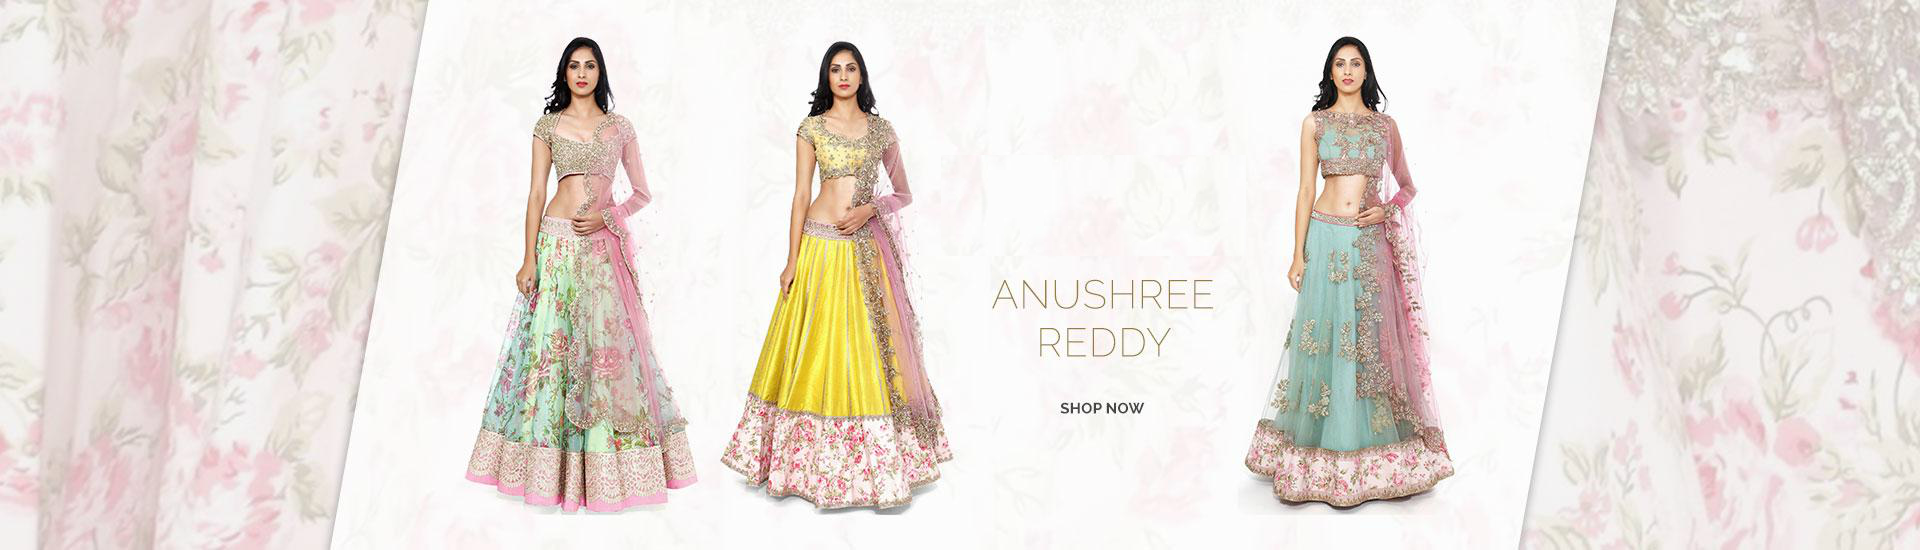 anushreereddy